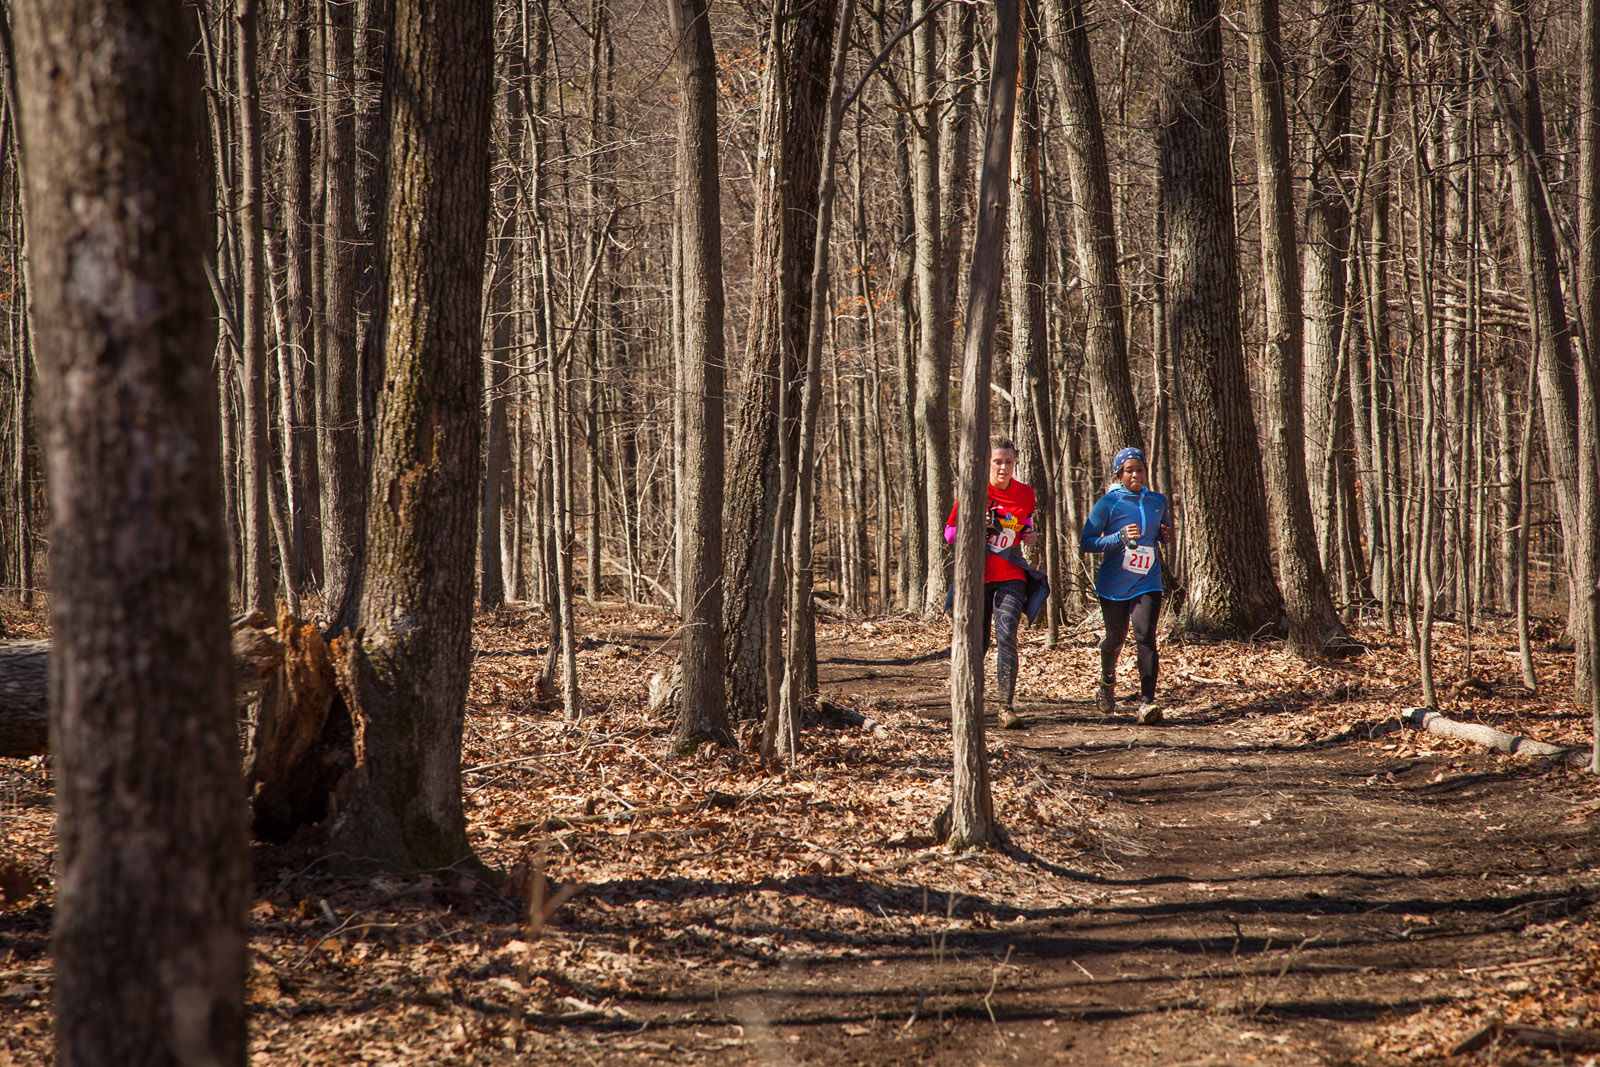 Willowsford also has more than 40 miles of trails. (Courtesy Willowsford)